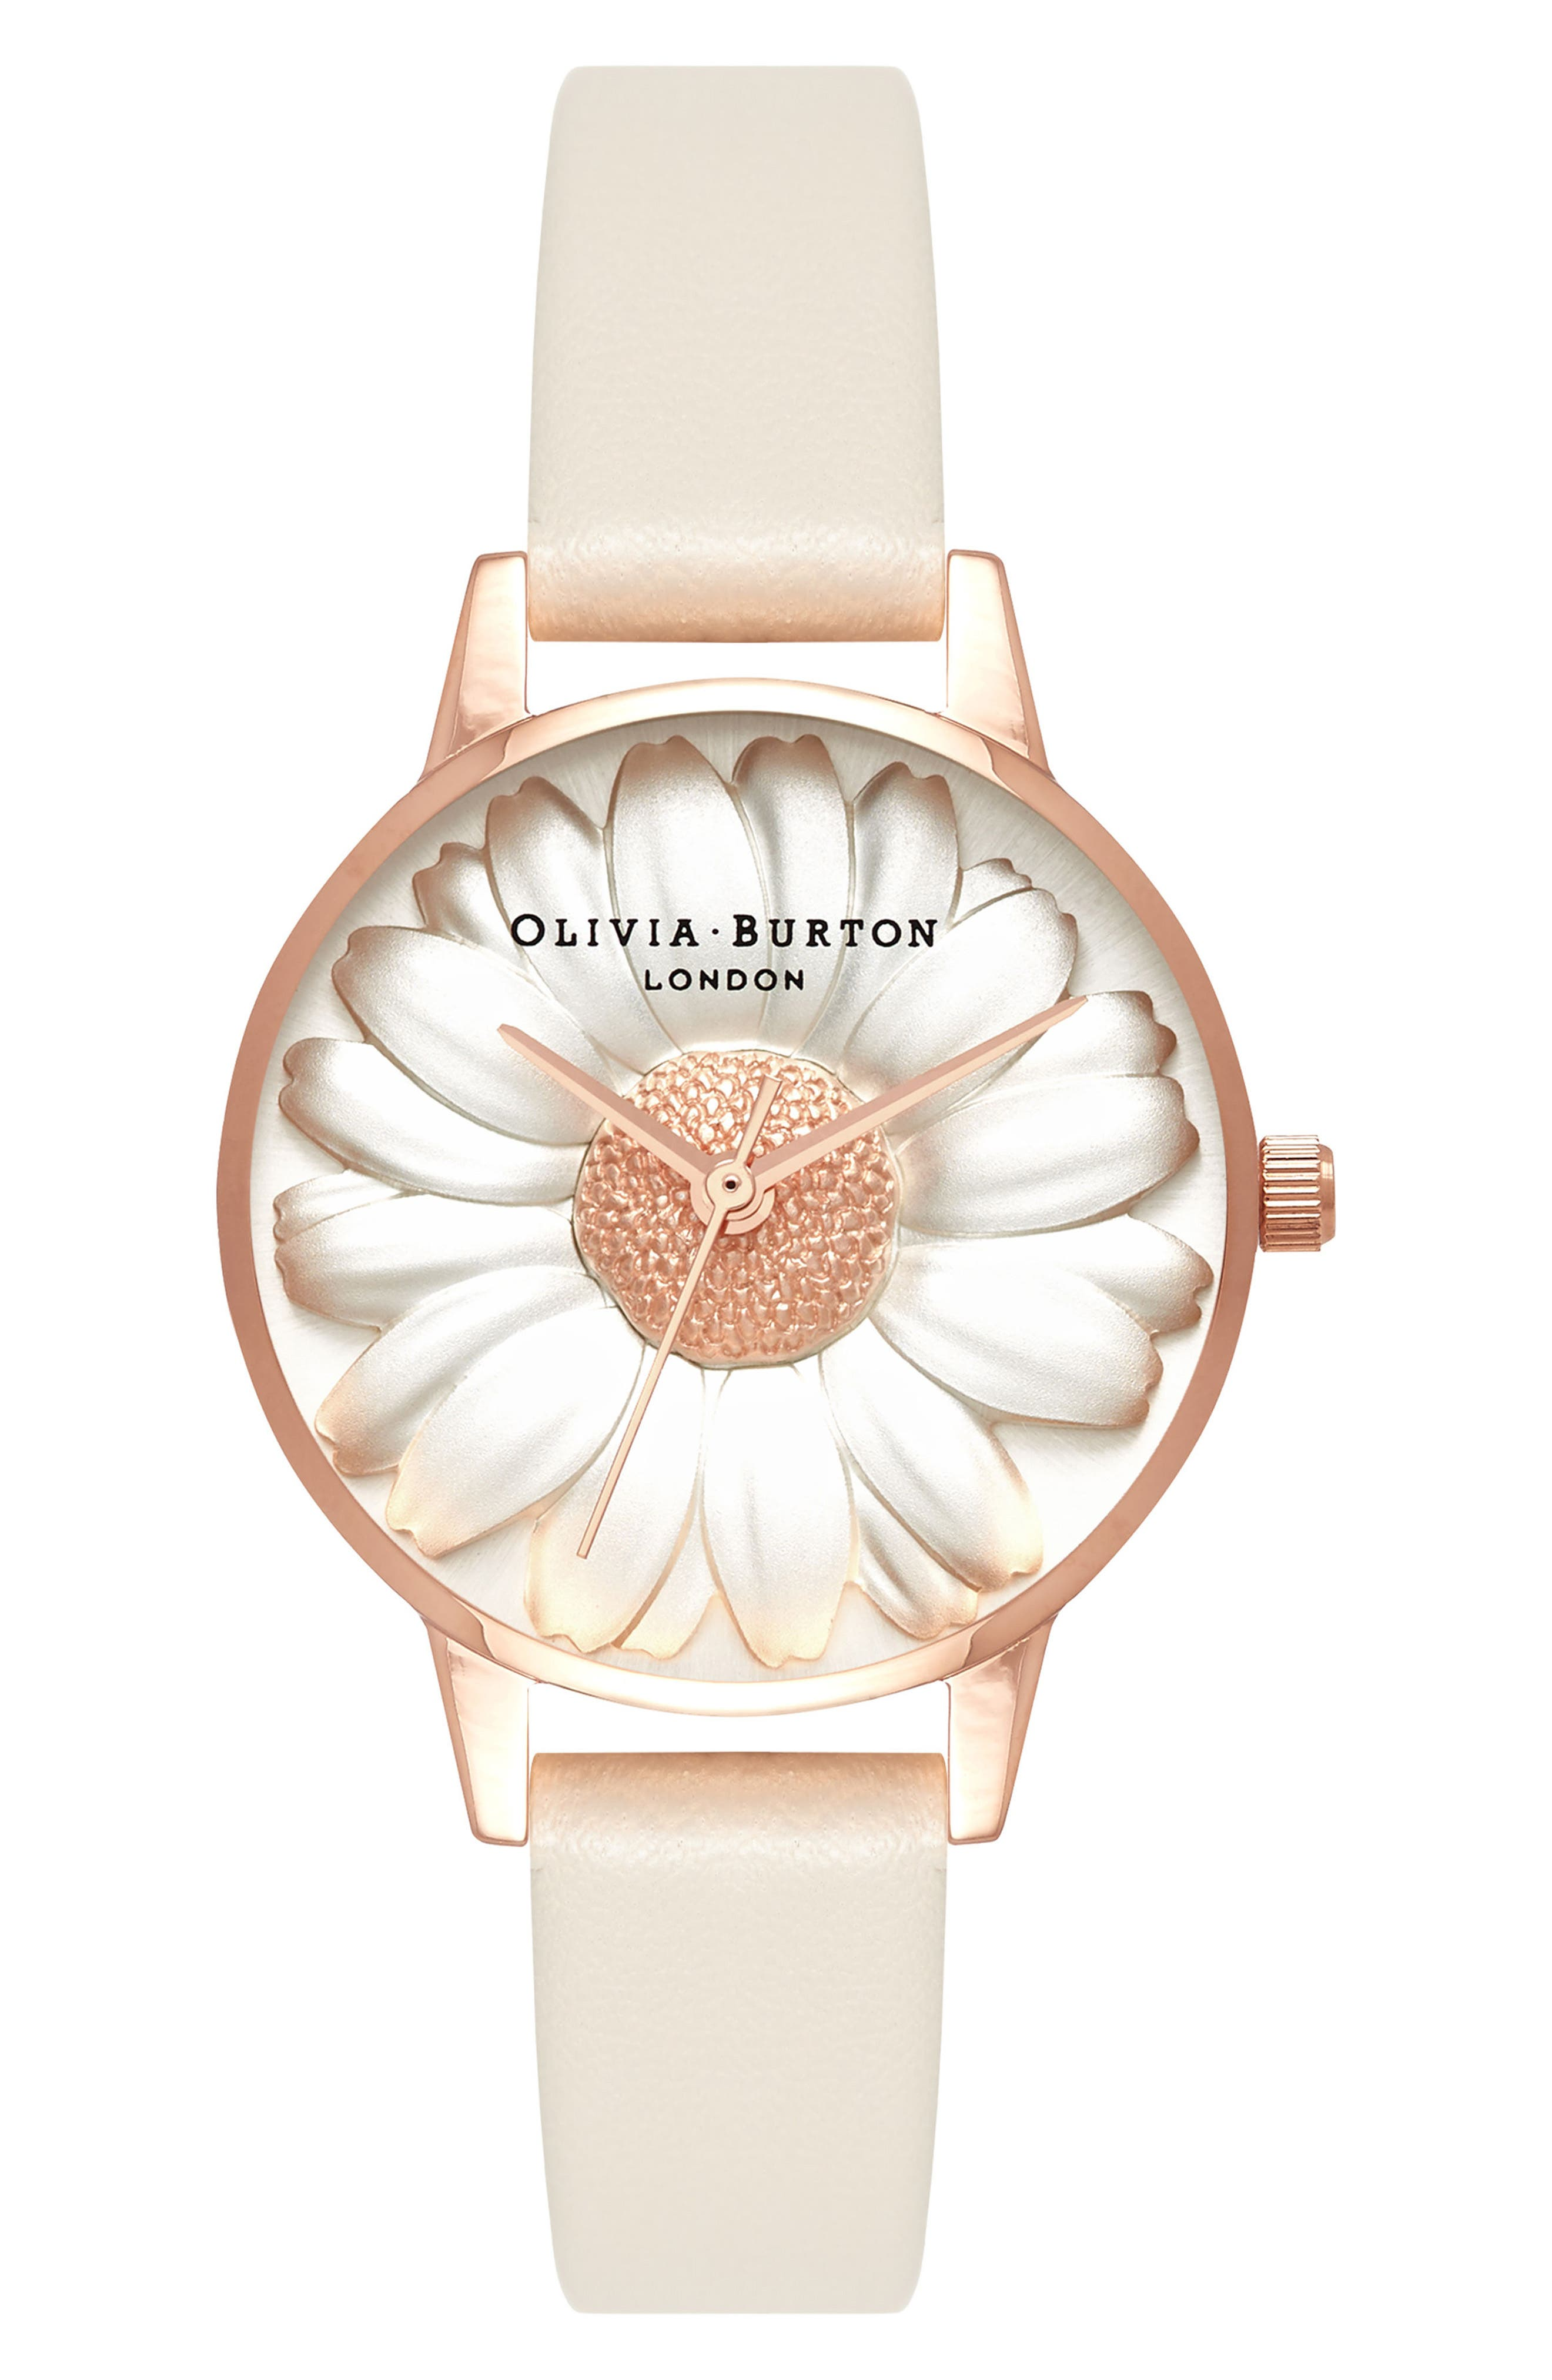 3D Daisey Faux Leather Strap Watch, 30mm,                             Main thumbnail 1, color,                             NUDE/ DAISY/ ROSE GOLD